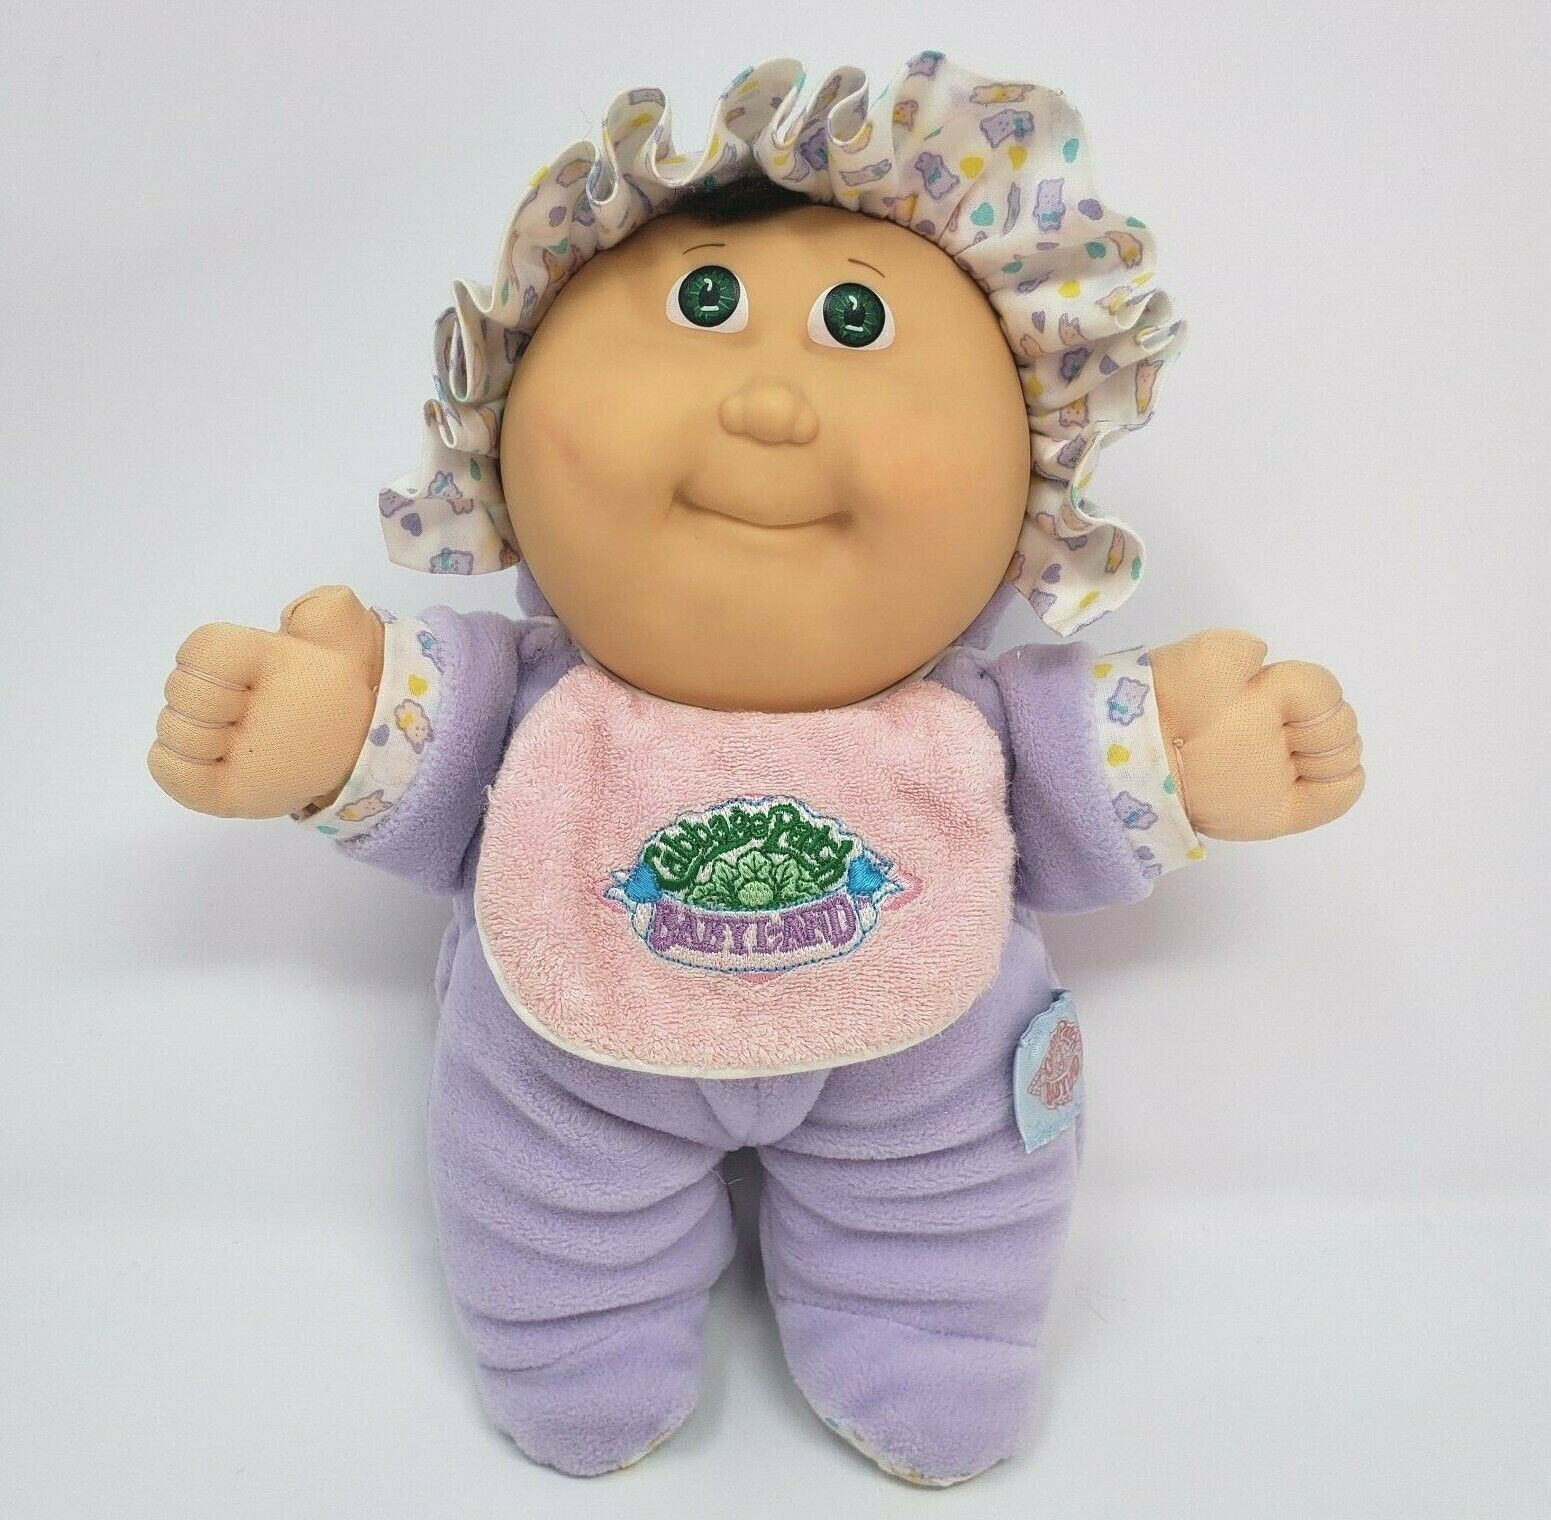 Primary image for VINTAGE 1988 CABBAGE PATCH KIDS BABYLAND RATTLE STUFFED ANIMAL PLUSH TOY DOLL